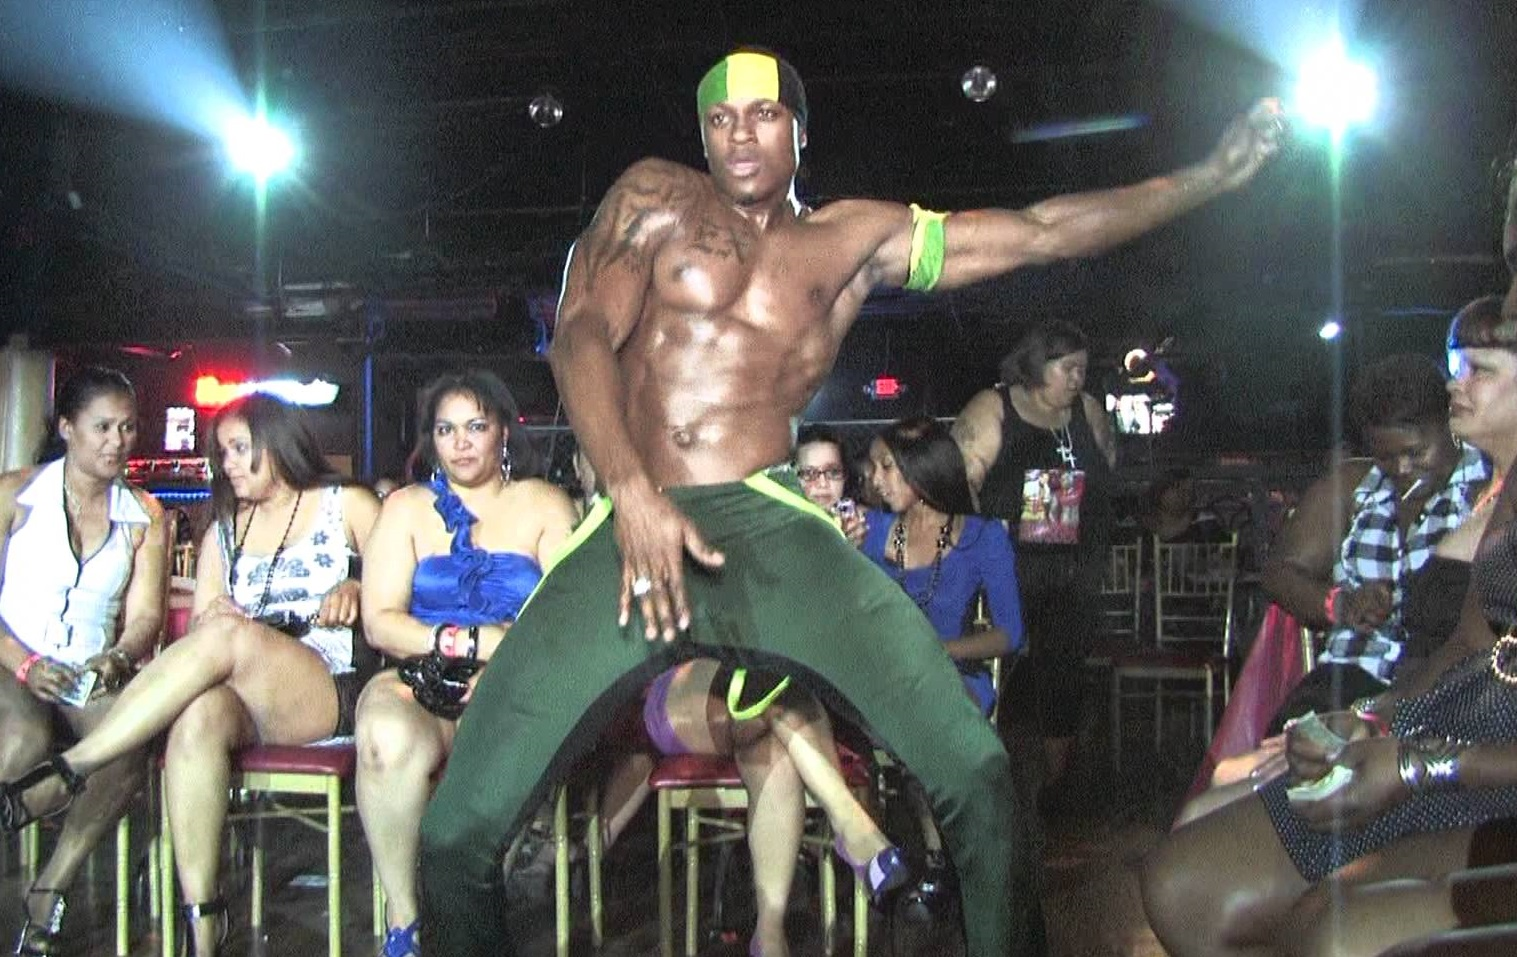 Hbo real sex male strippers